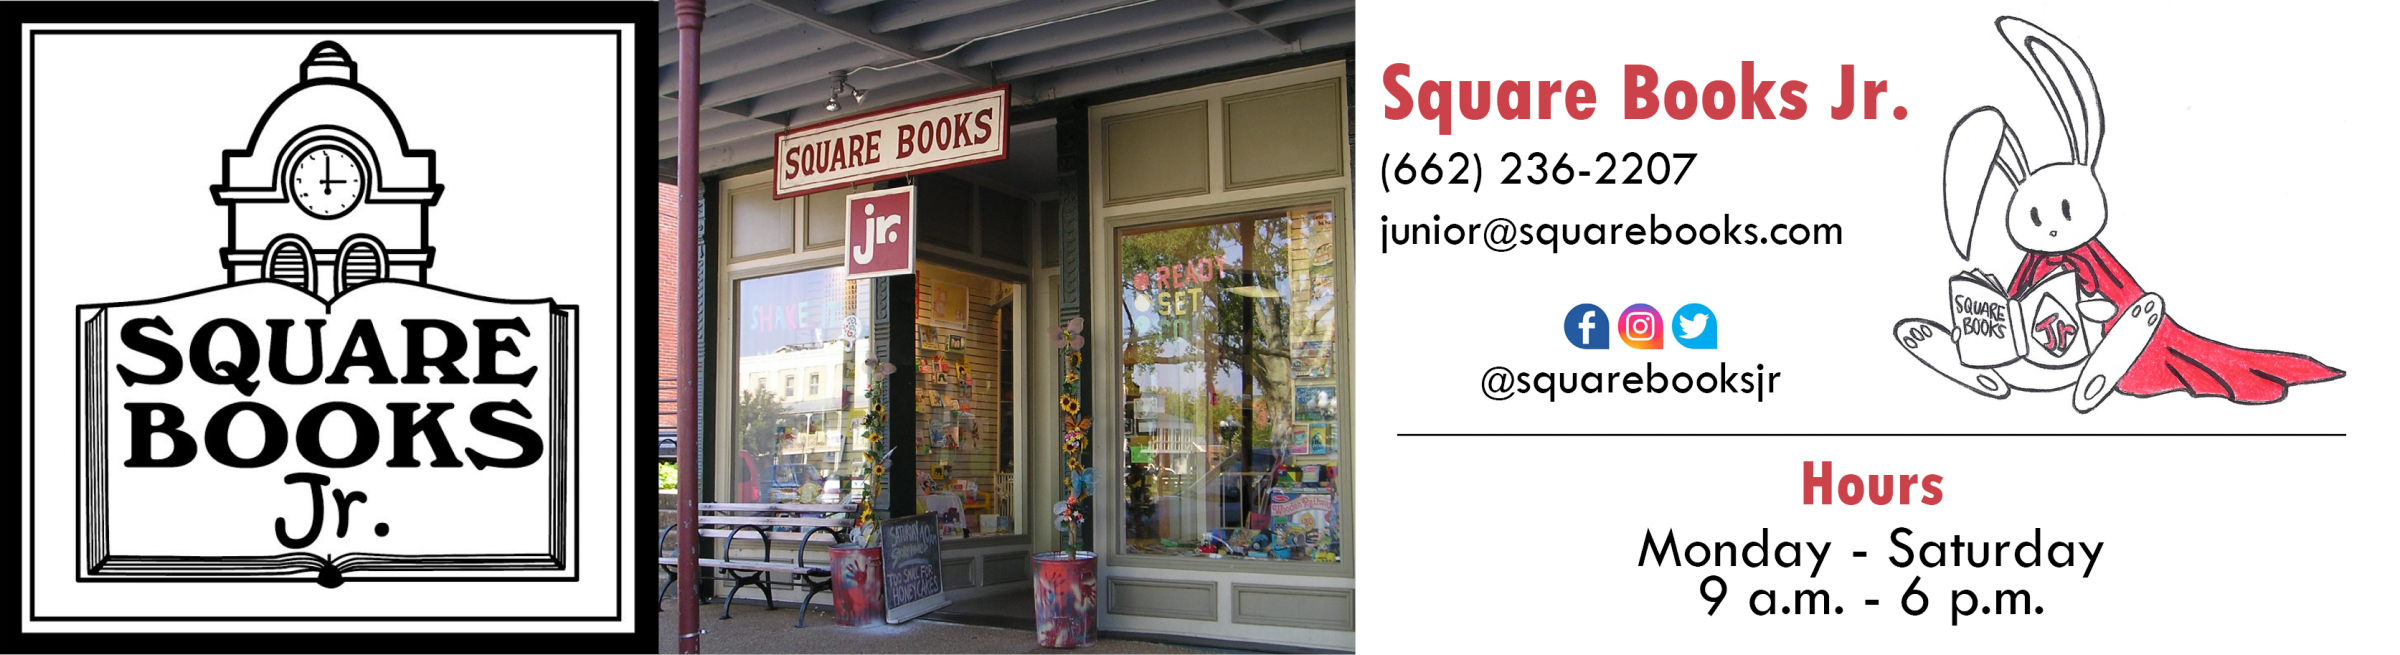 Square Books Jr.